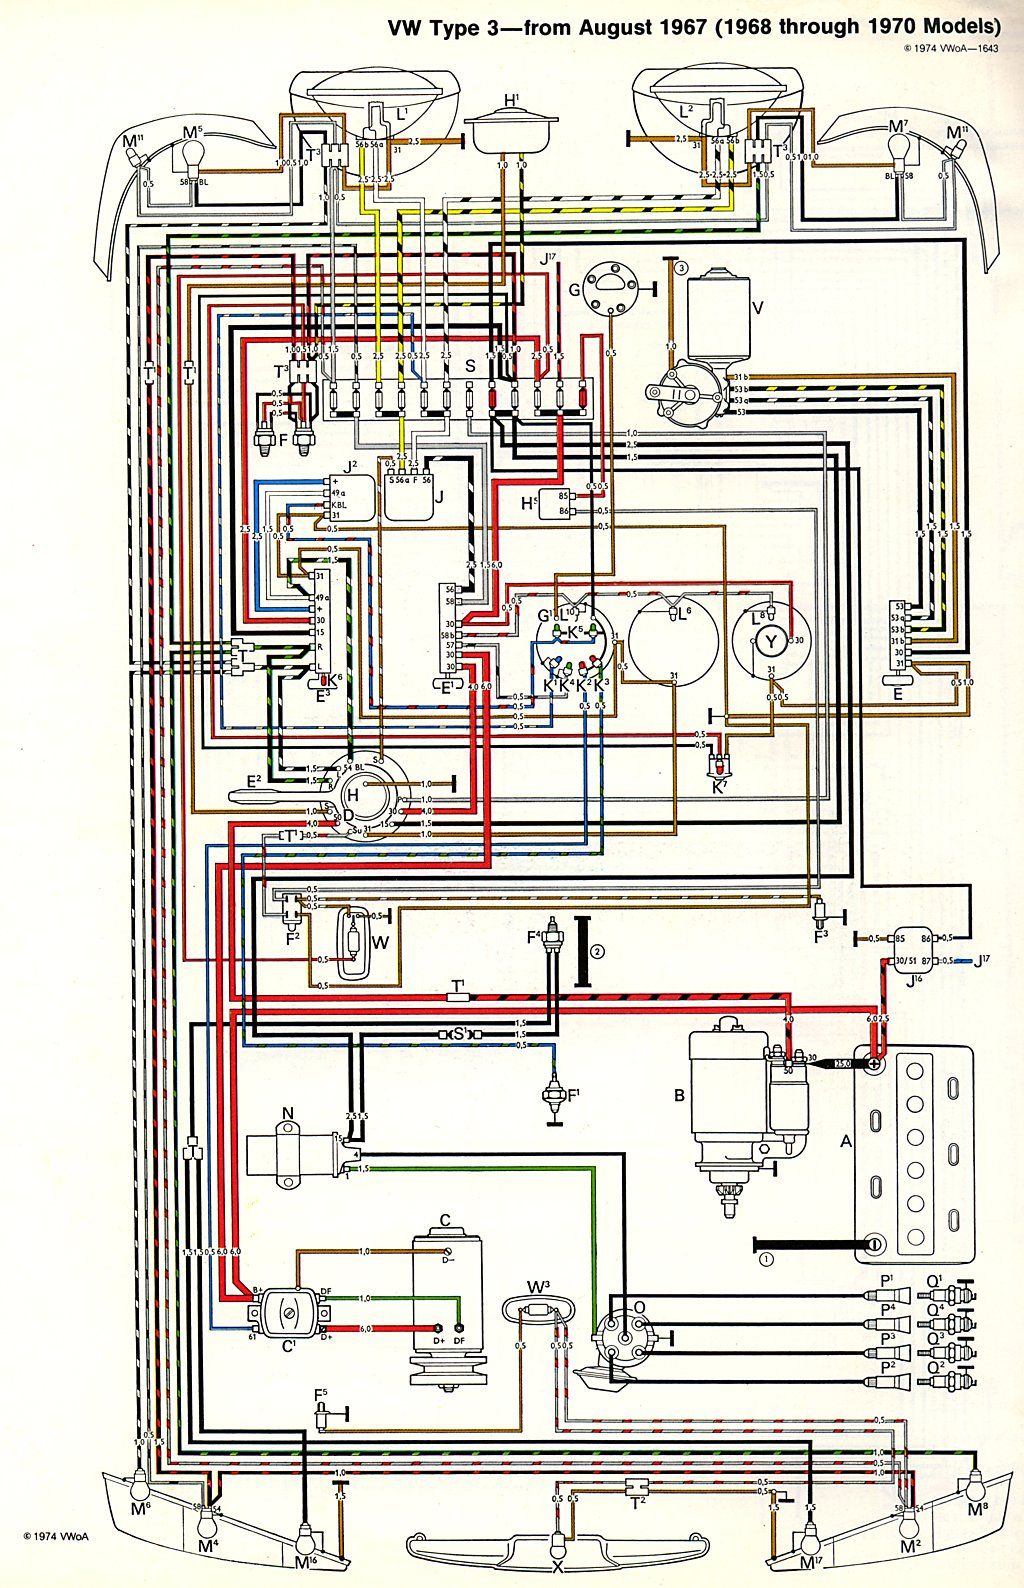 type3_6870 wiring harness 73 VW Beetle Wiring Diagram at soozxer.org